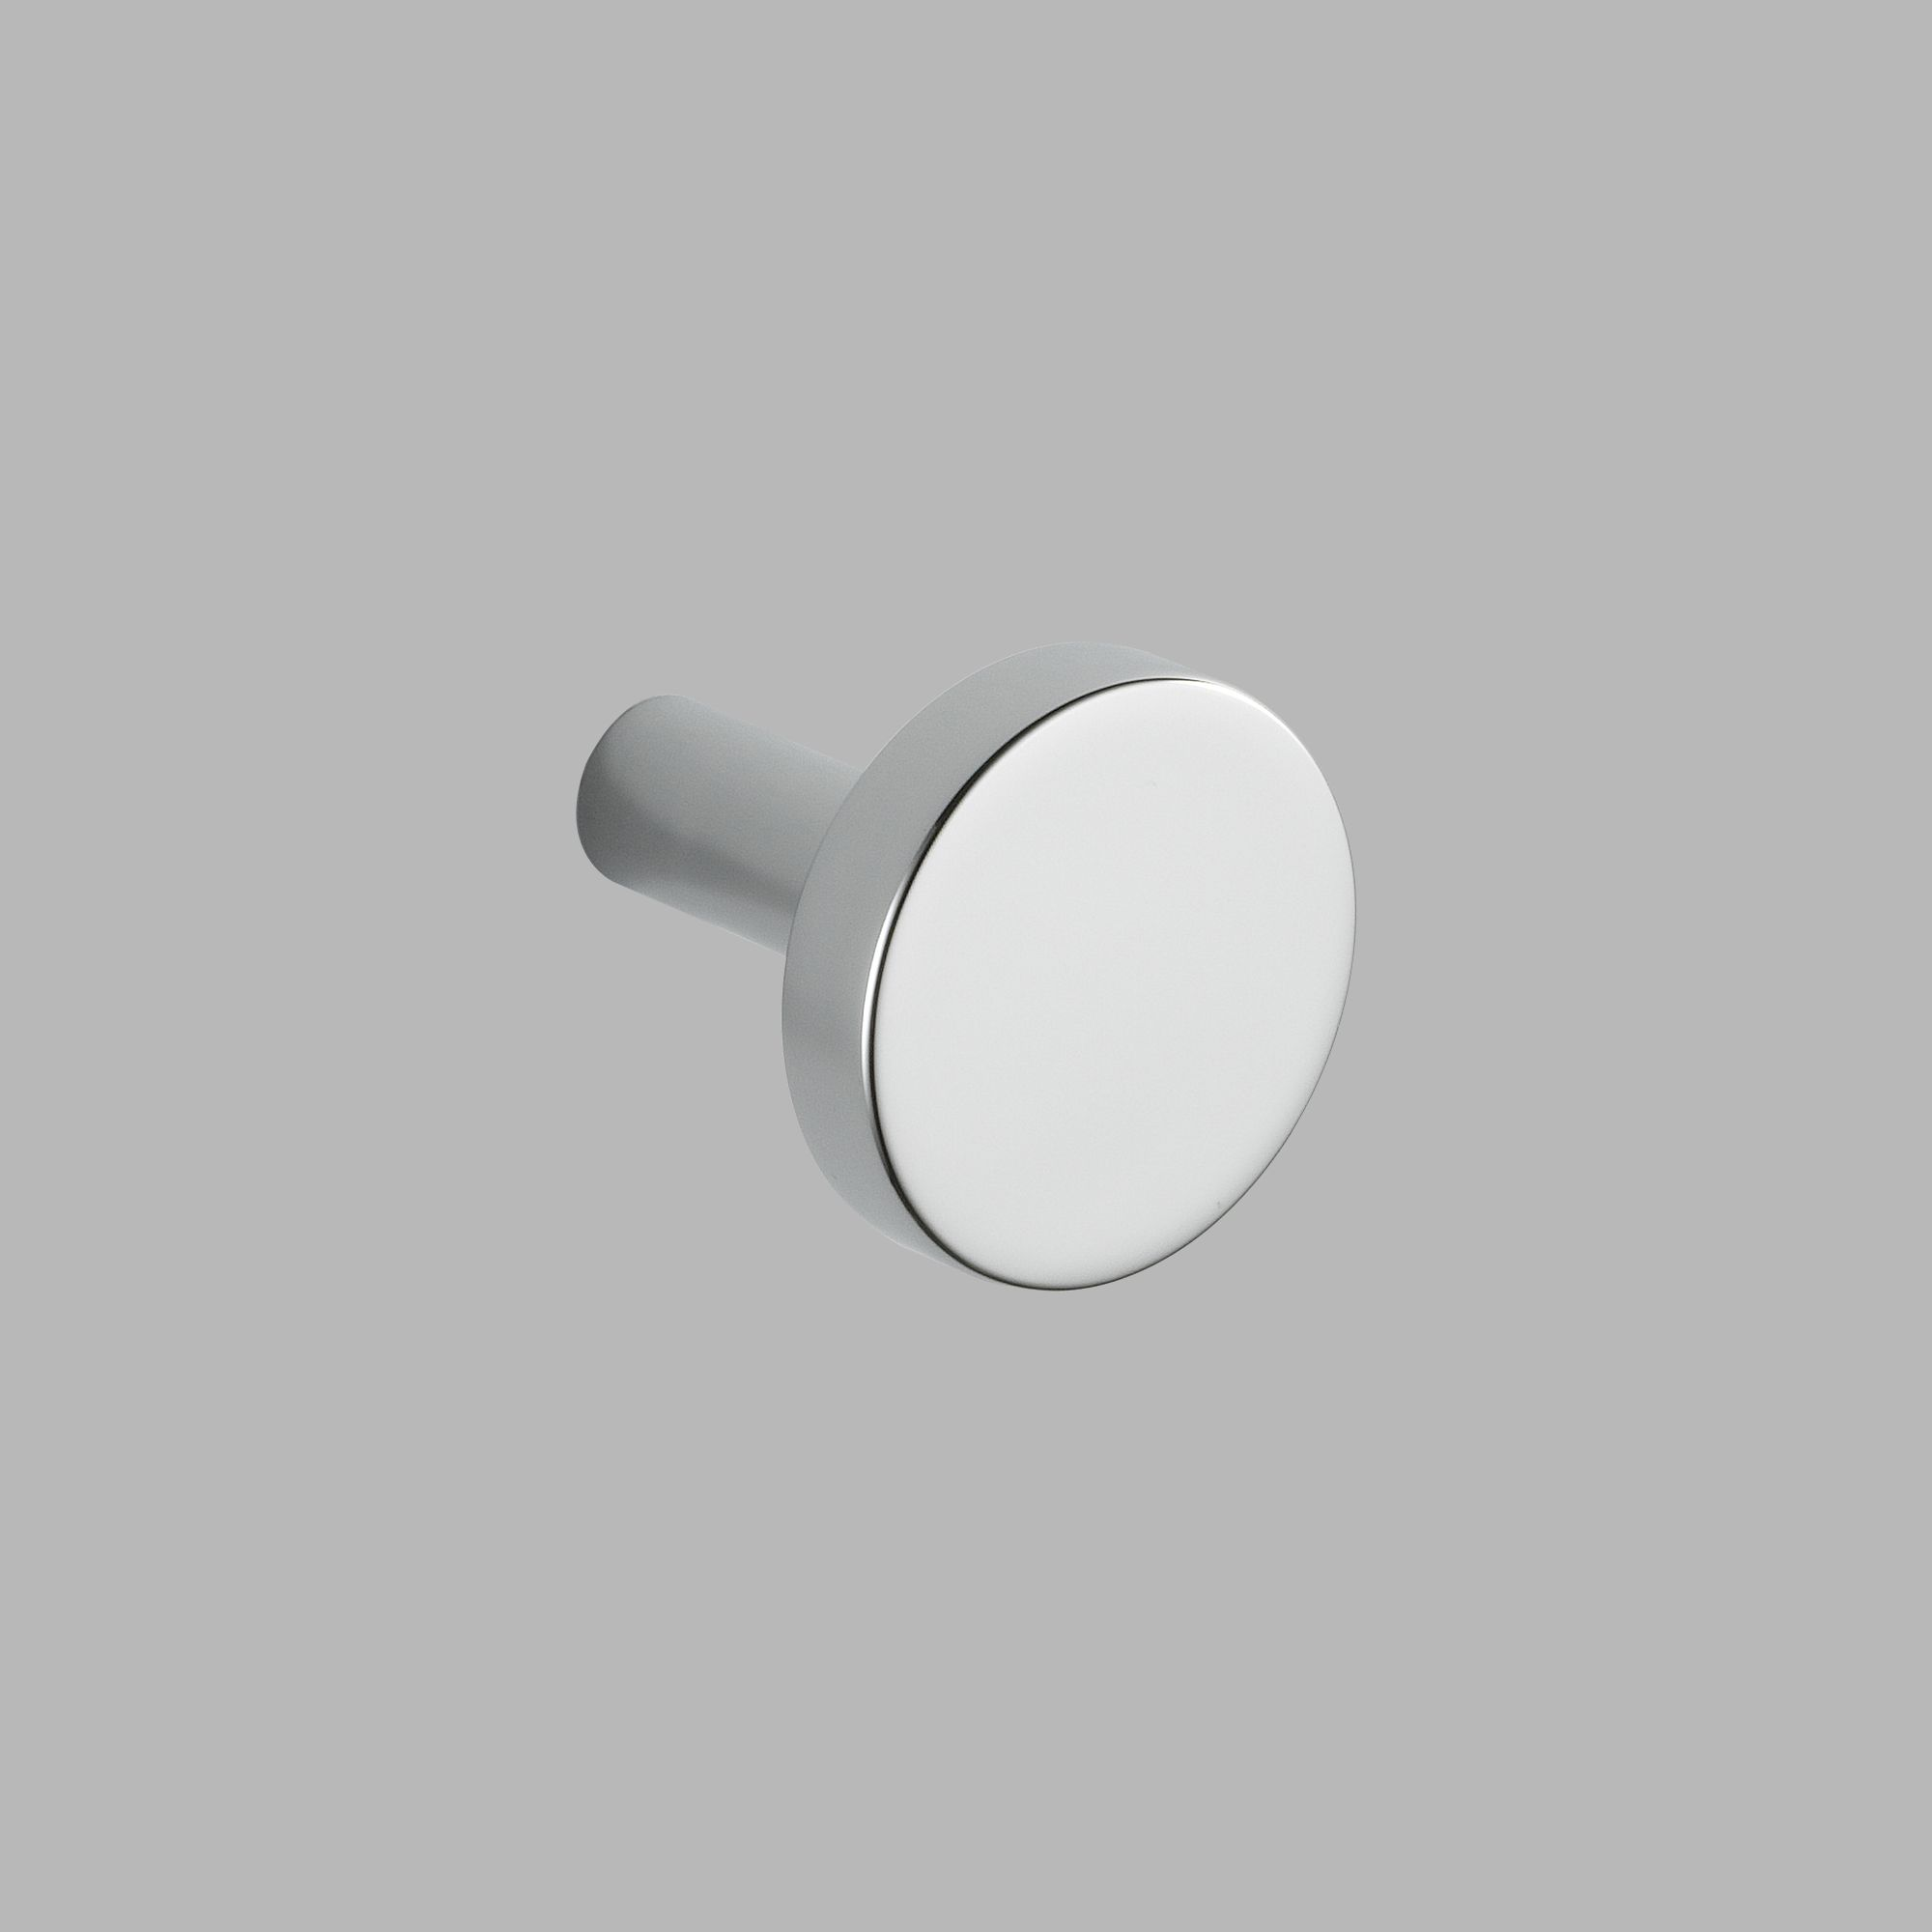 699275 Brizo Odin Drawer Knob